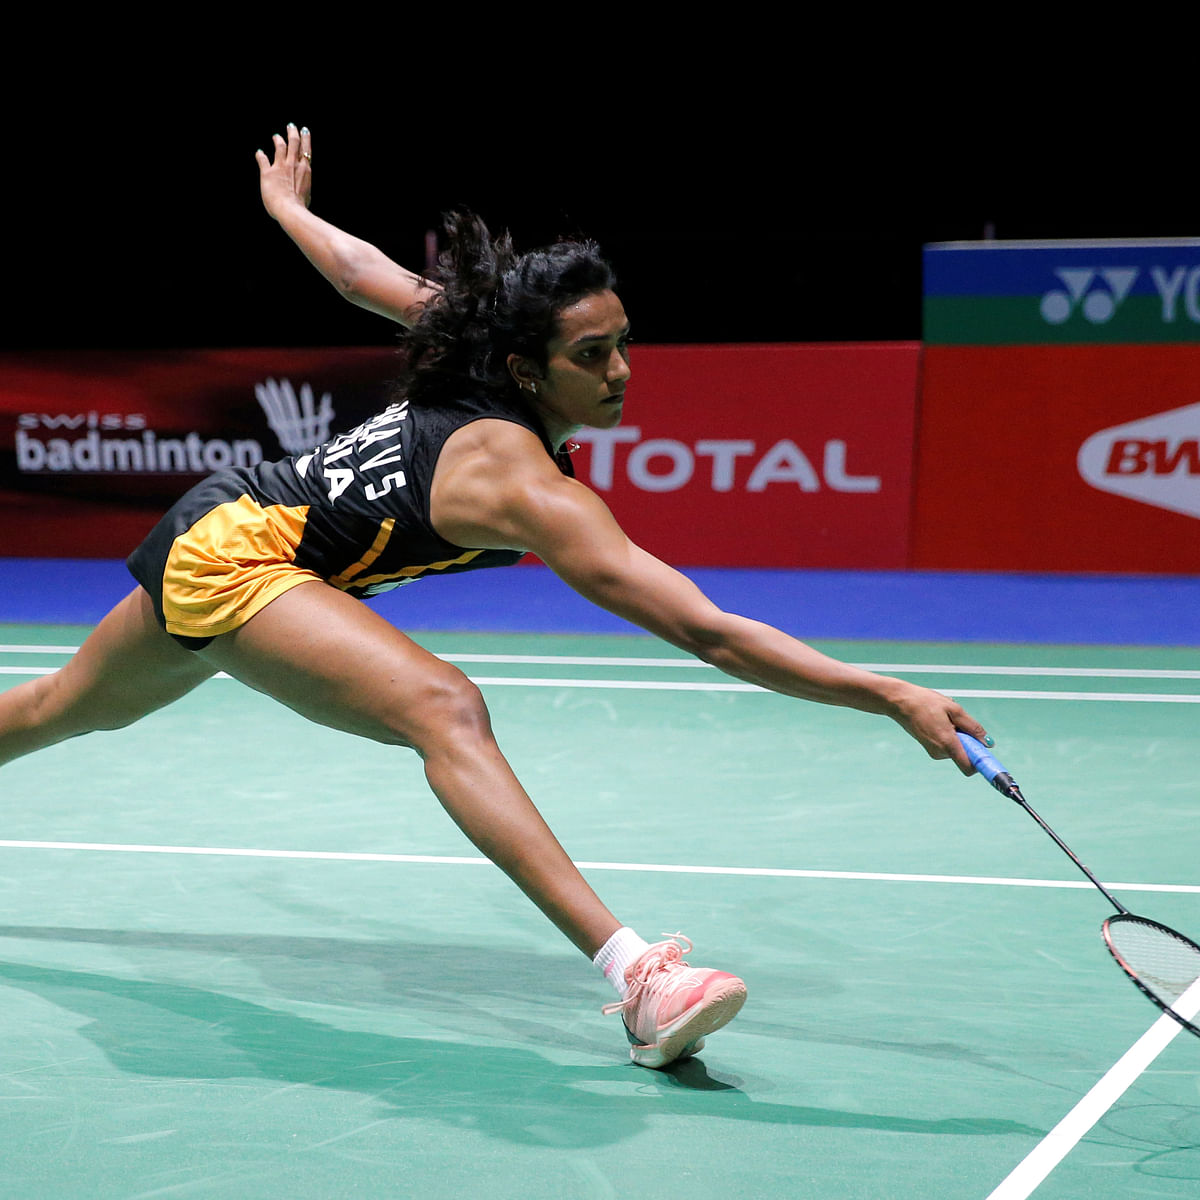 BWF World Championships: PV Sindhu advances to semis after beating Tai Tzu Ying